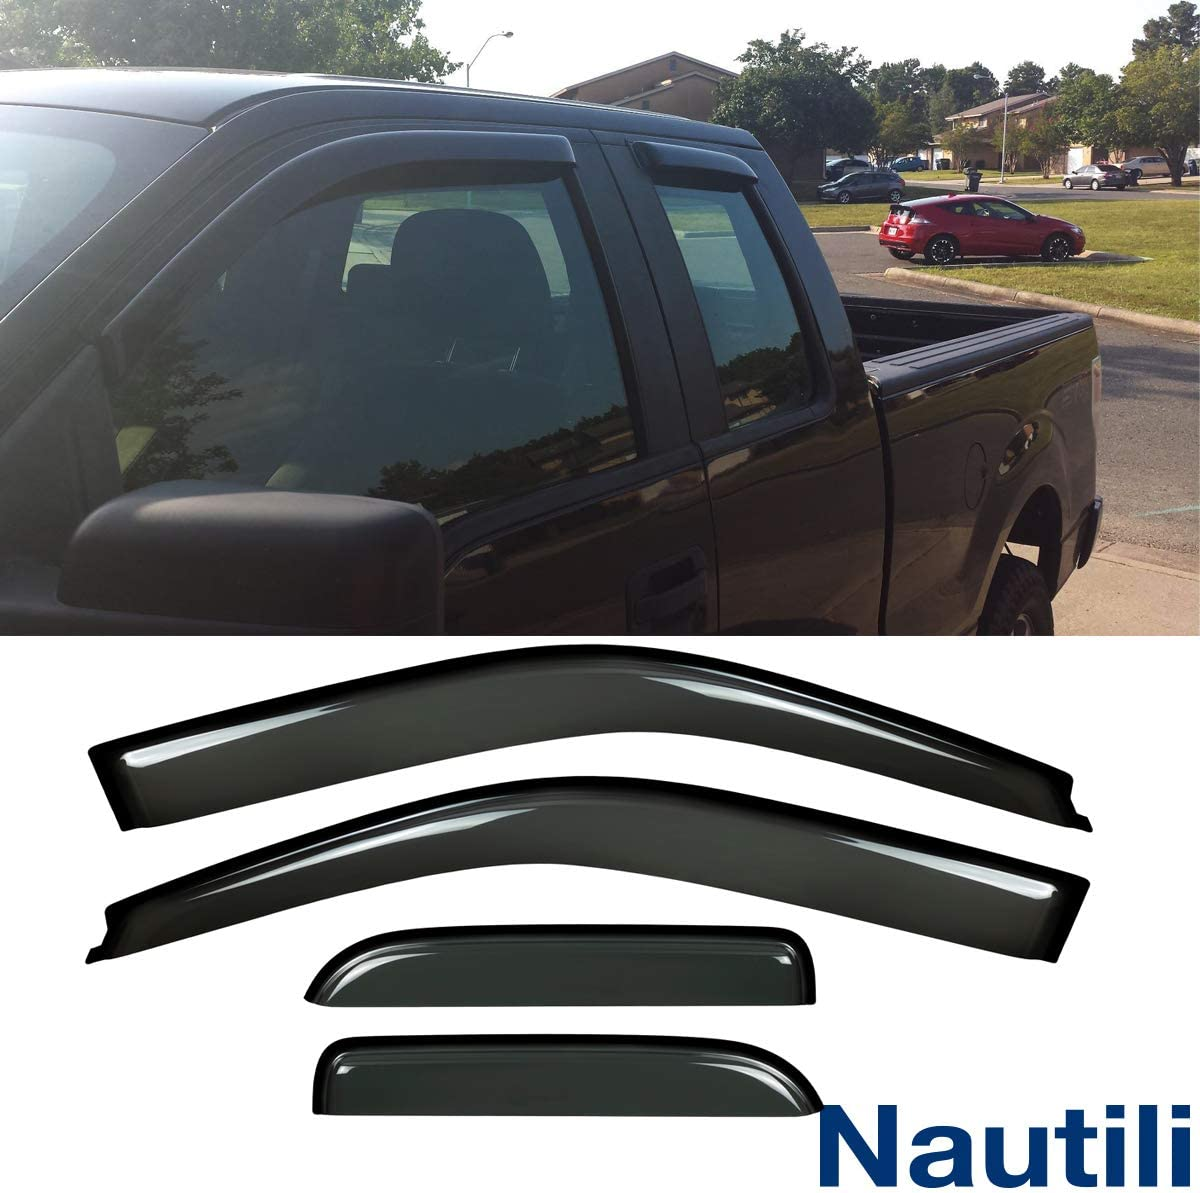 4-Piece Set Free shipping anywhere in the nation Ventvisor Side Window Deflector discount Guard Vent Sun Rain